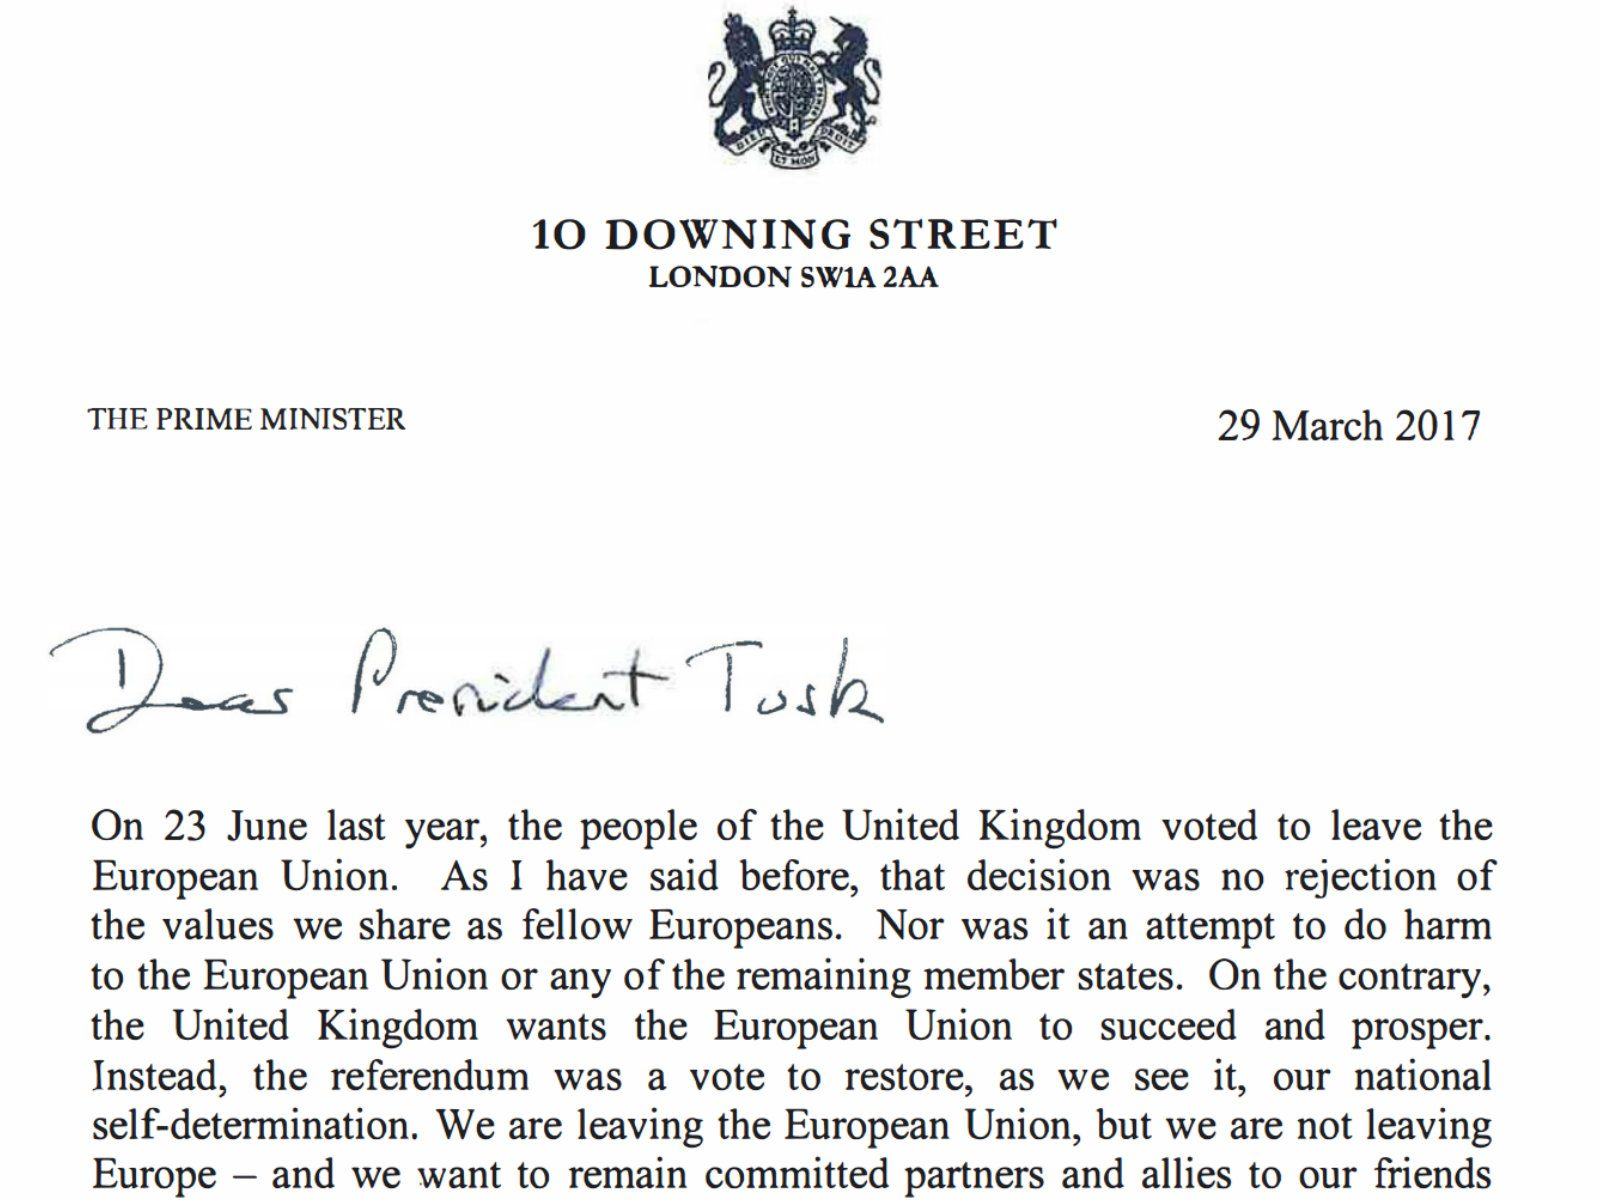 Here's Theresa May's Full Letter To The European Union